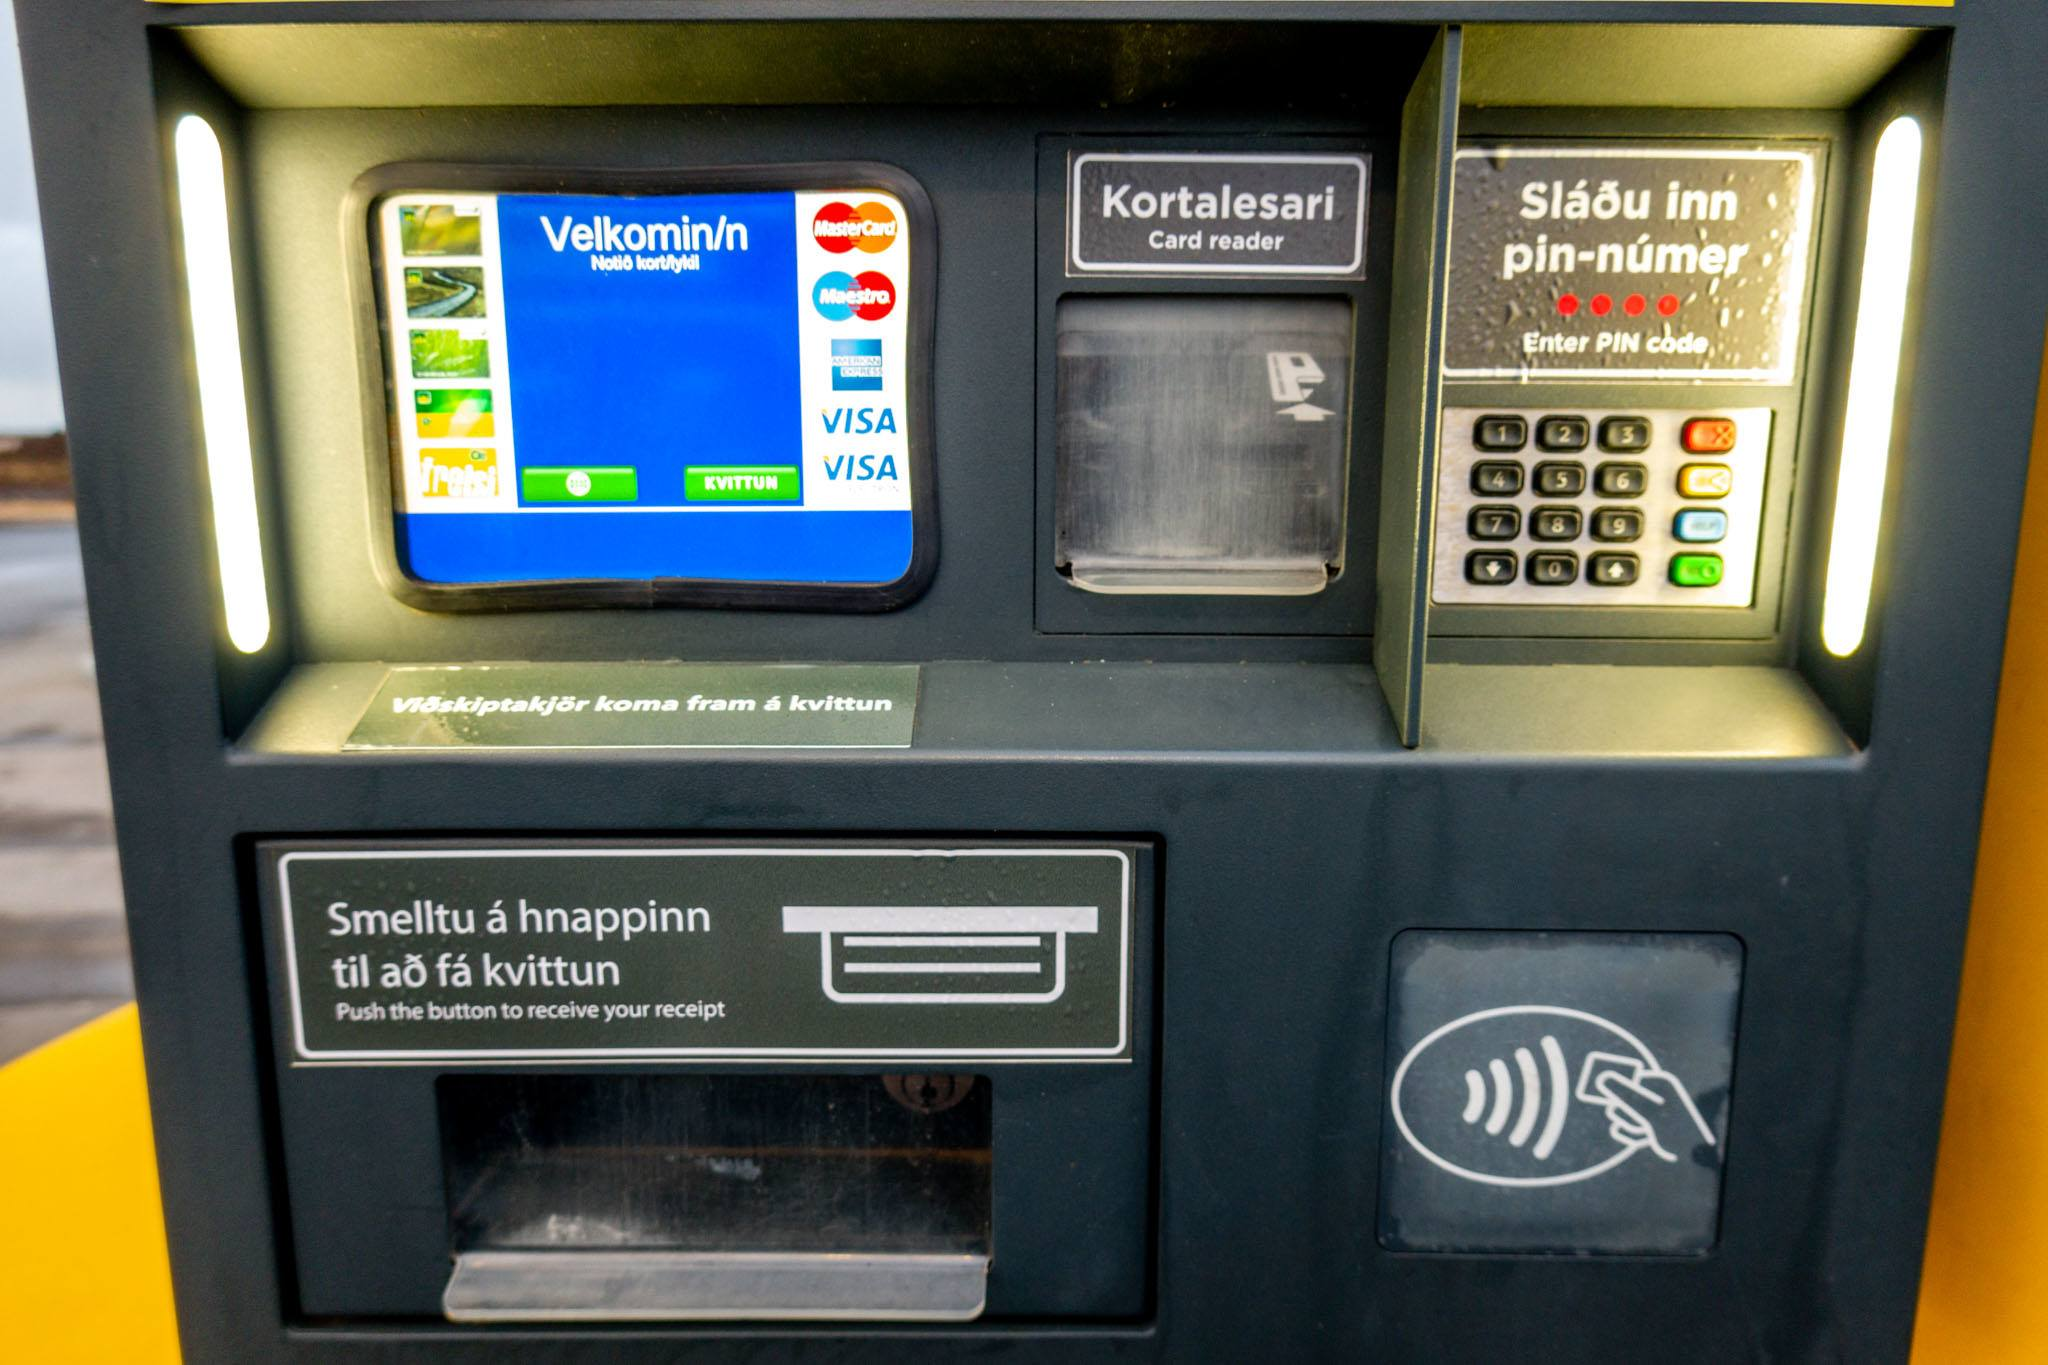 The credit card readers on the self-pay pumps